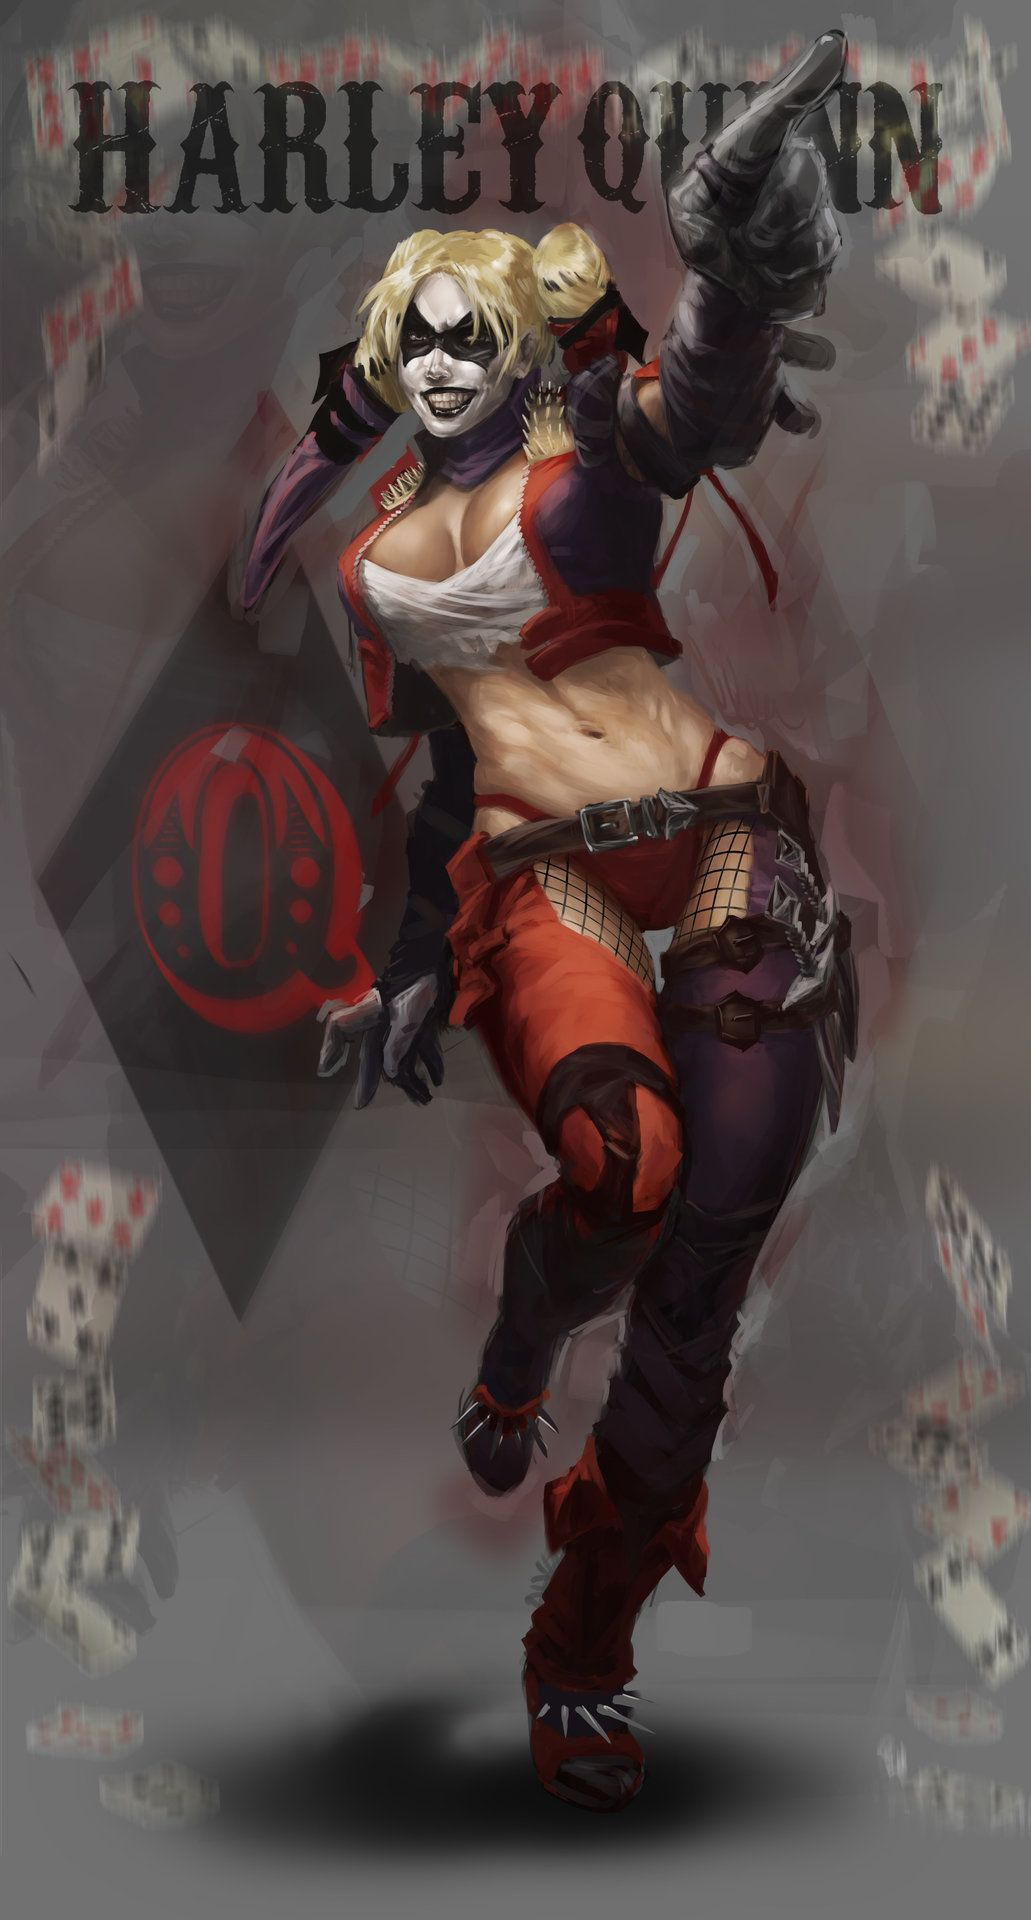 Here a Harley Quinn fanart that I did a while ago. Done entirely in Photoshop CC, without any refer